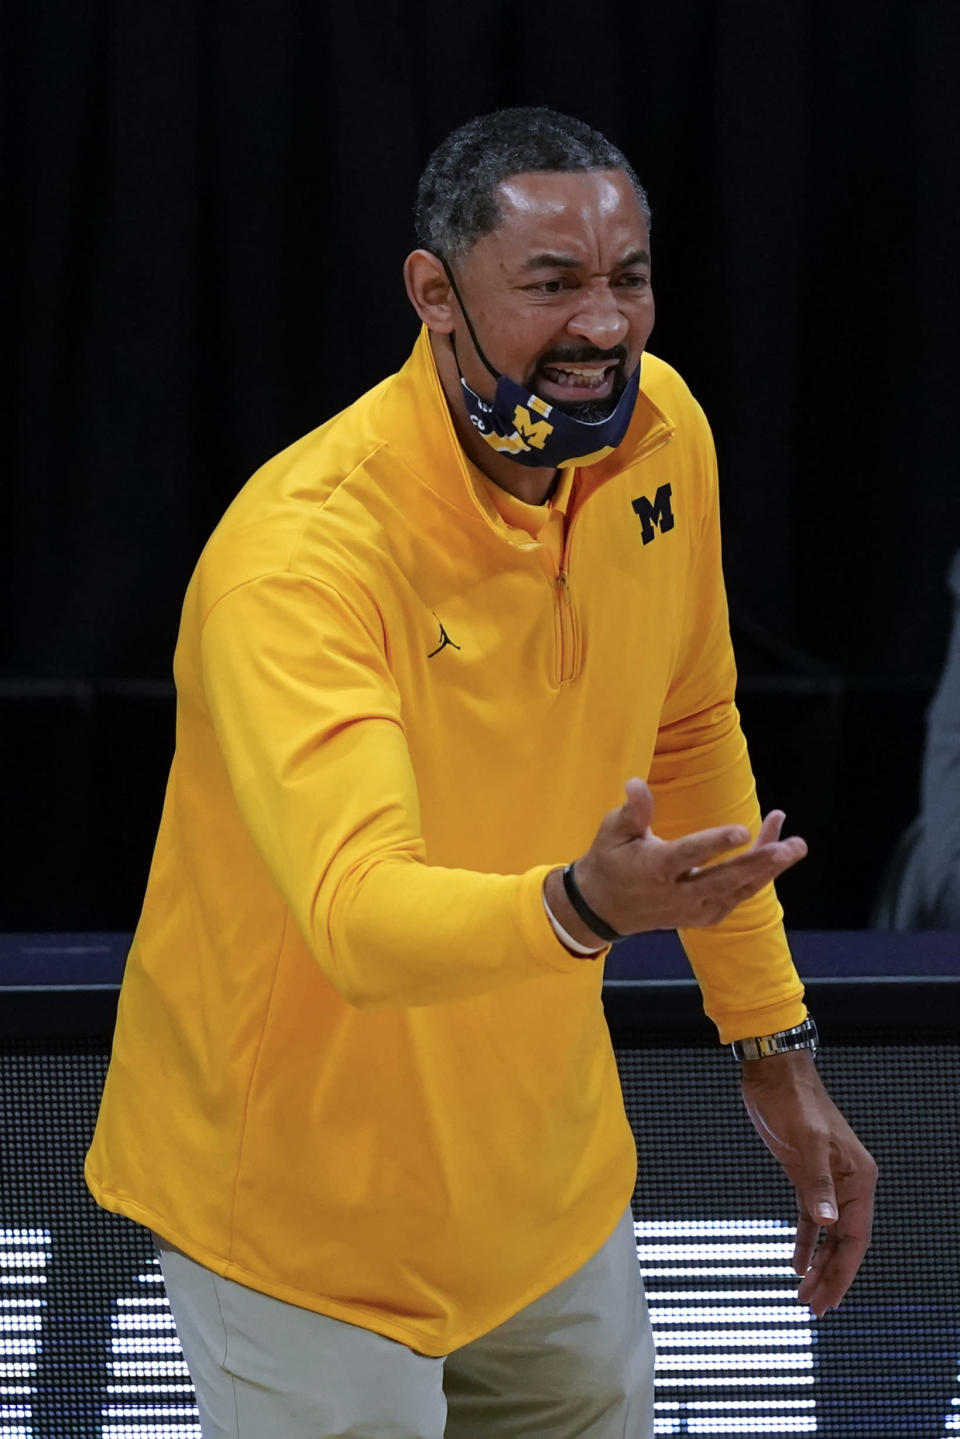 Michigan head coach Juwan Howard reacts to a call during the first half of an Elite 8 game against UCLA in the NCAA men's college basketball tournament at Lucas Oil Stadium, Tuesday, March 30, 2021, in Indianapolis. (AP Photo/Michael Conroy)